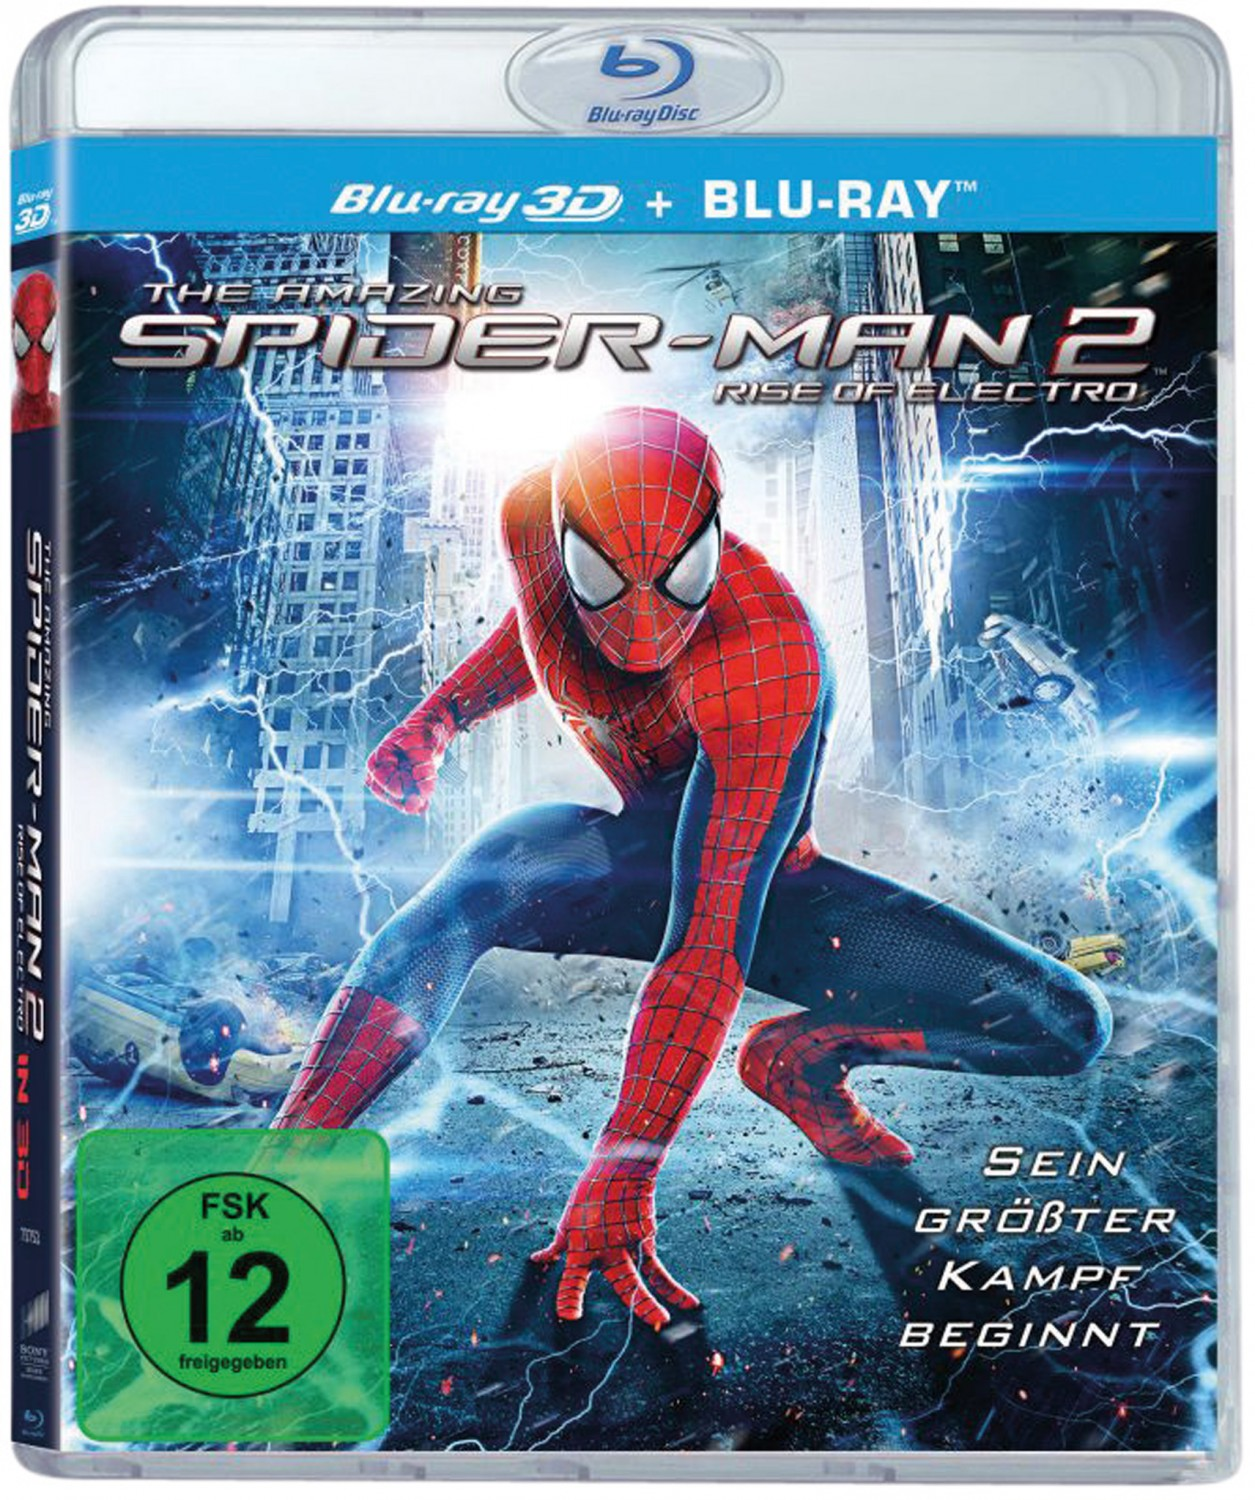 Blu-ray Film The Amazing Spider-Man 2: Rise of Electro (Sony) im Test, Bild 1